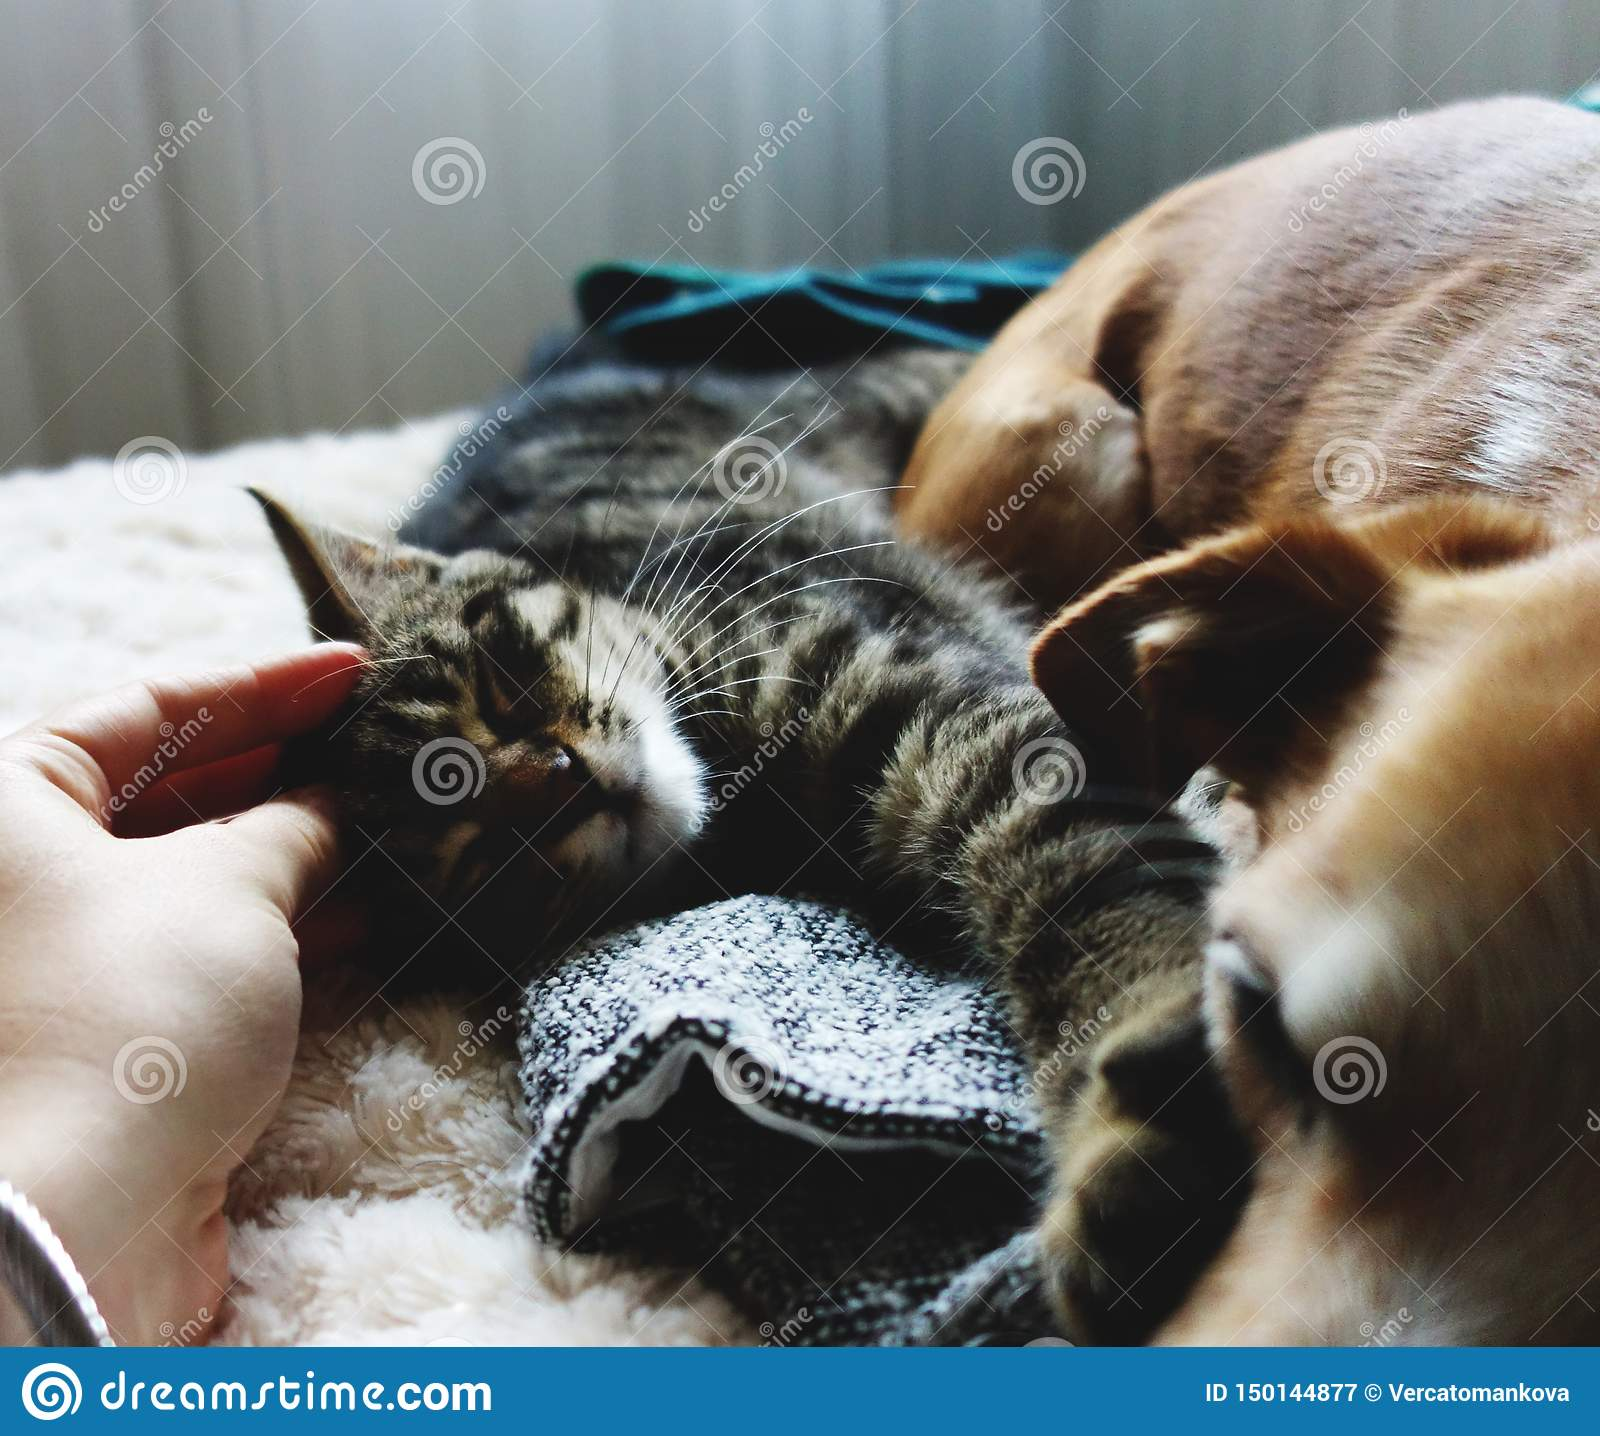 Relaxed dog and cat on sofa being petted.